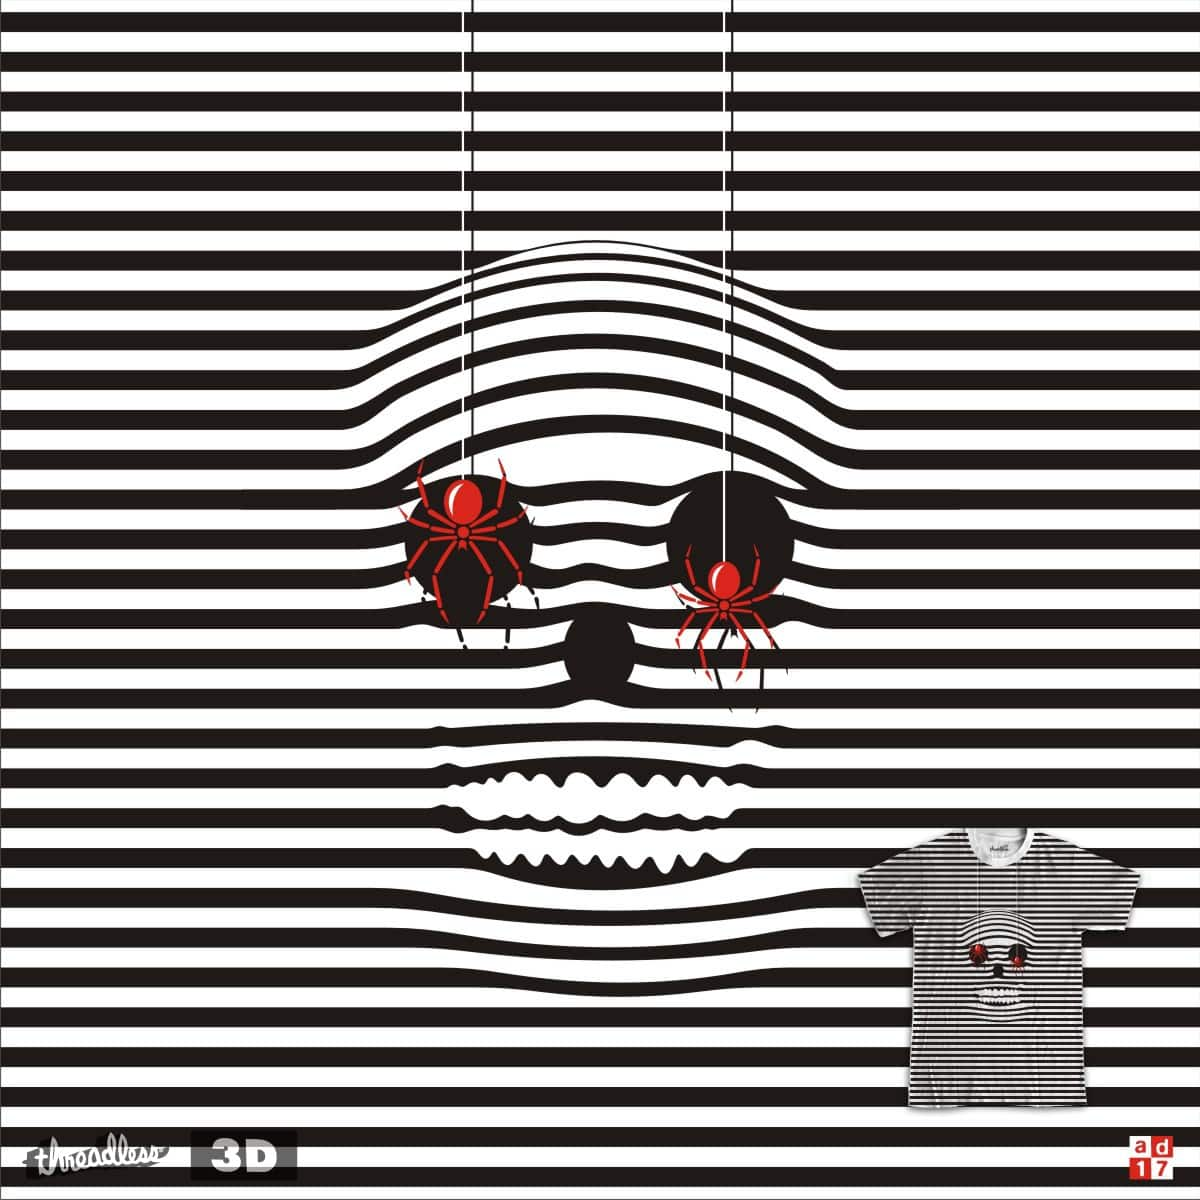 skull stripe & spider by a.d.17 on Threadless